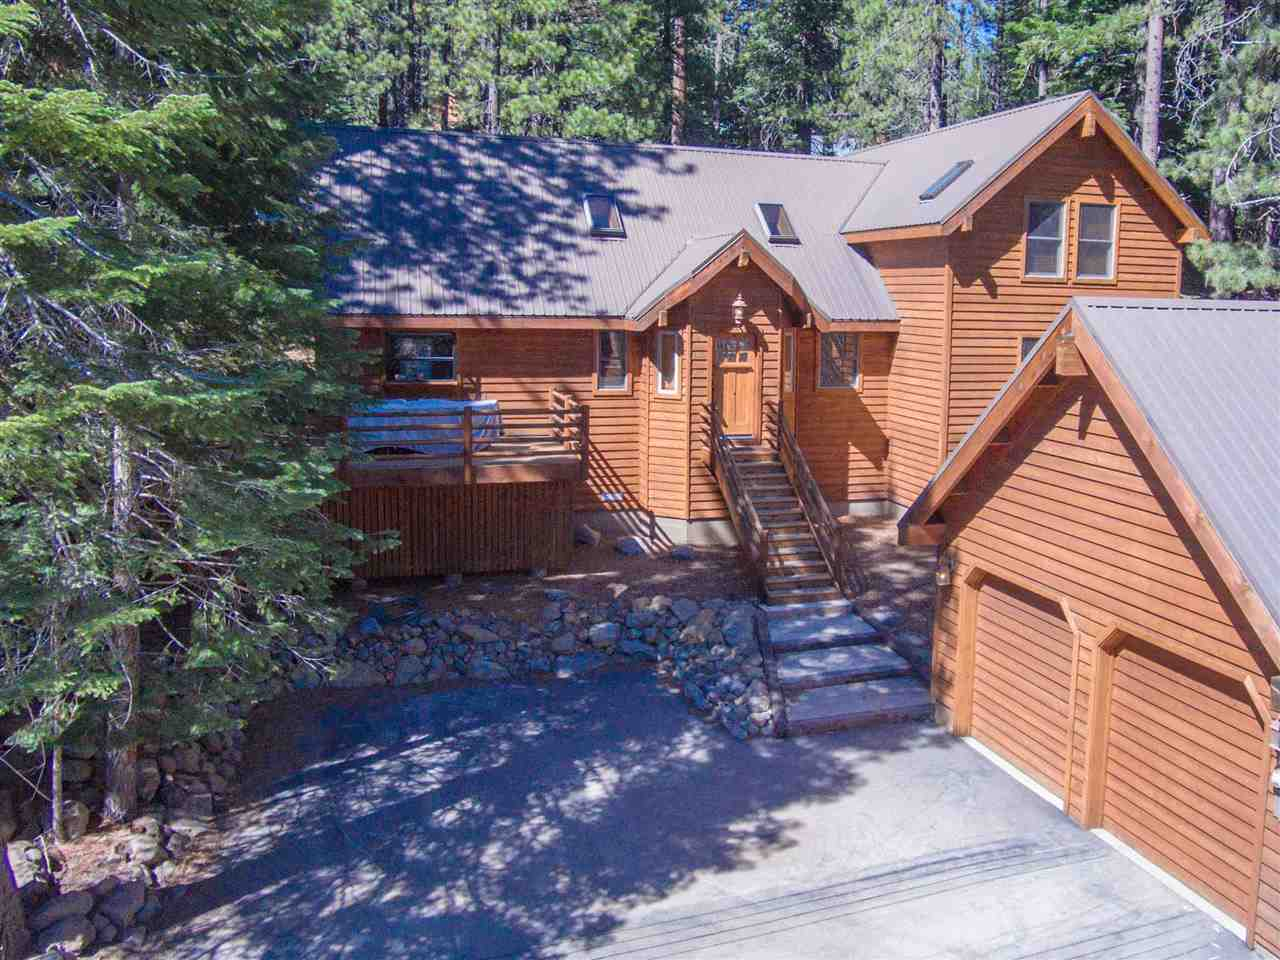 Casa Unifamiliar por un Venta en 13090 Falcon Point Place Truckee, California 96161 Estados Unidos